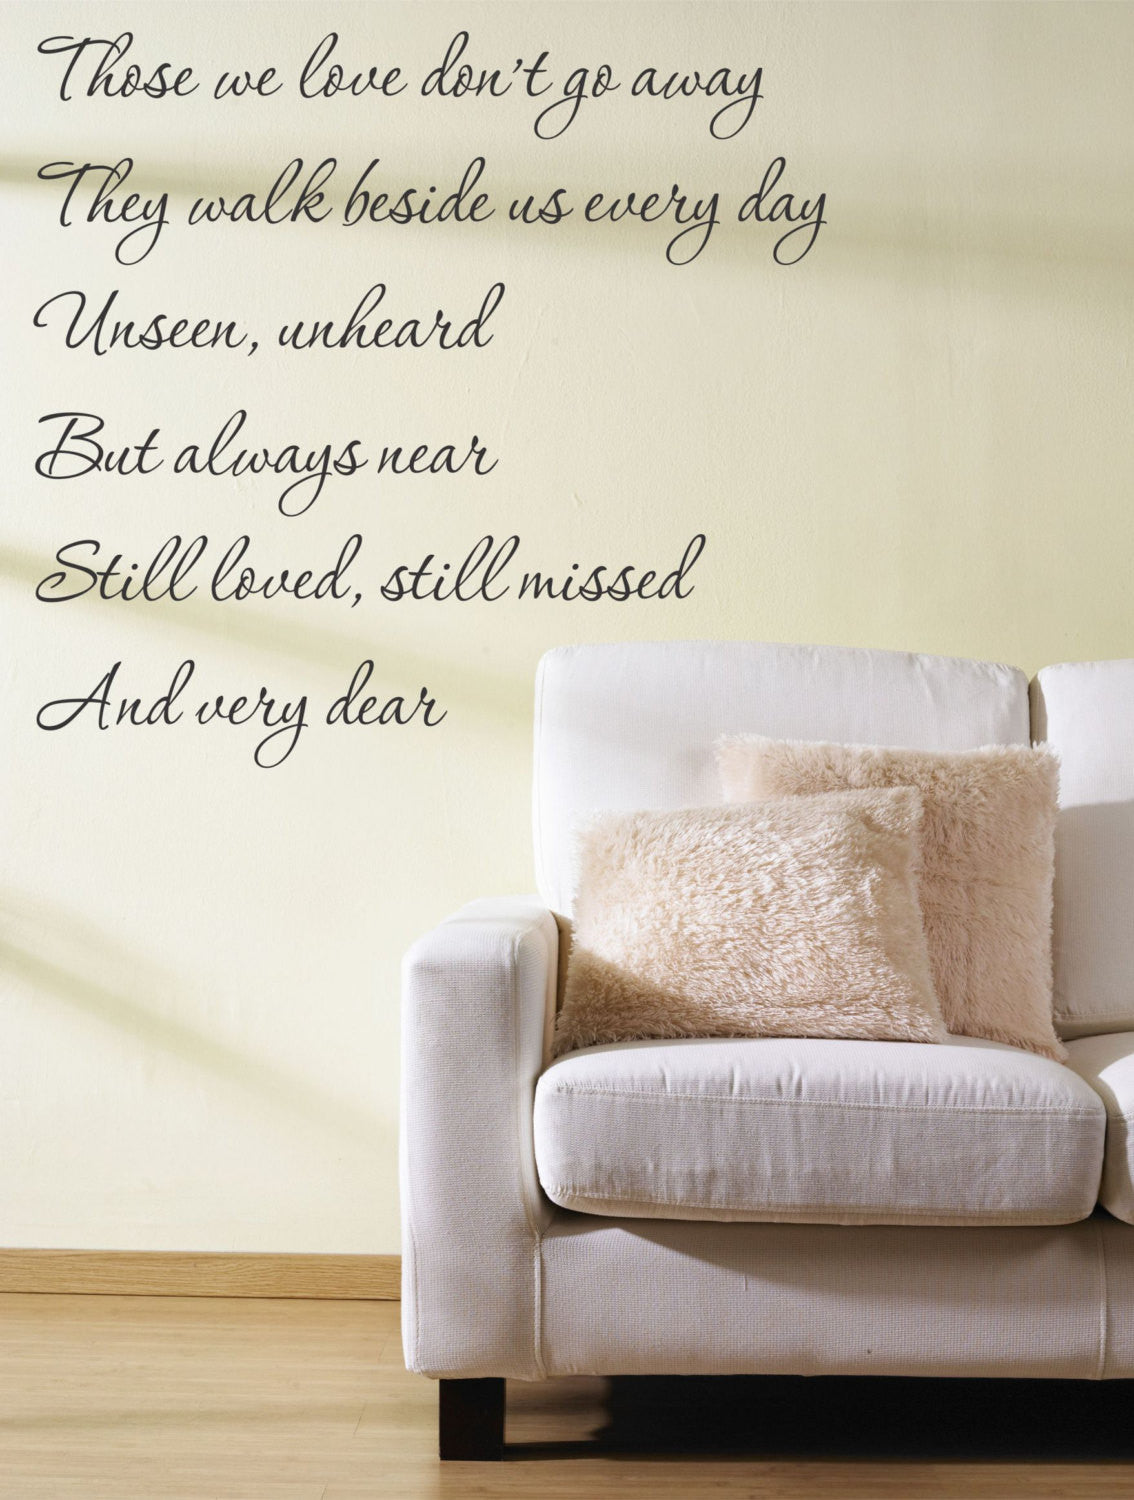 Those We Love Dont Go Away Quote Vinyl Wall Decal Sticker